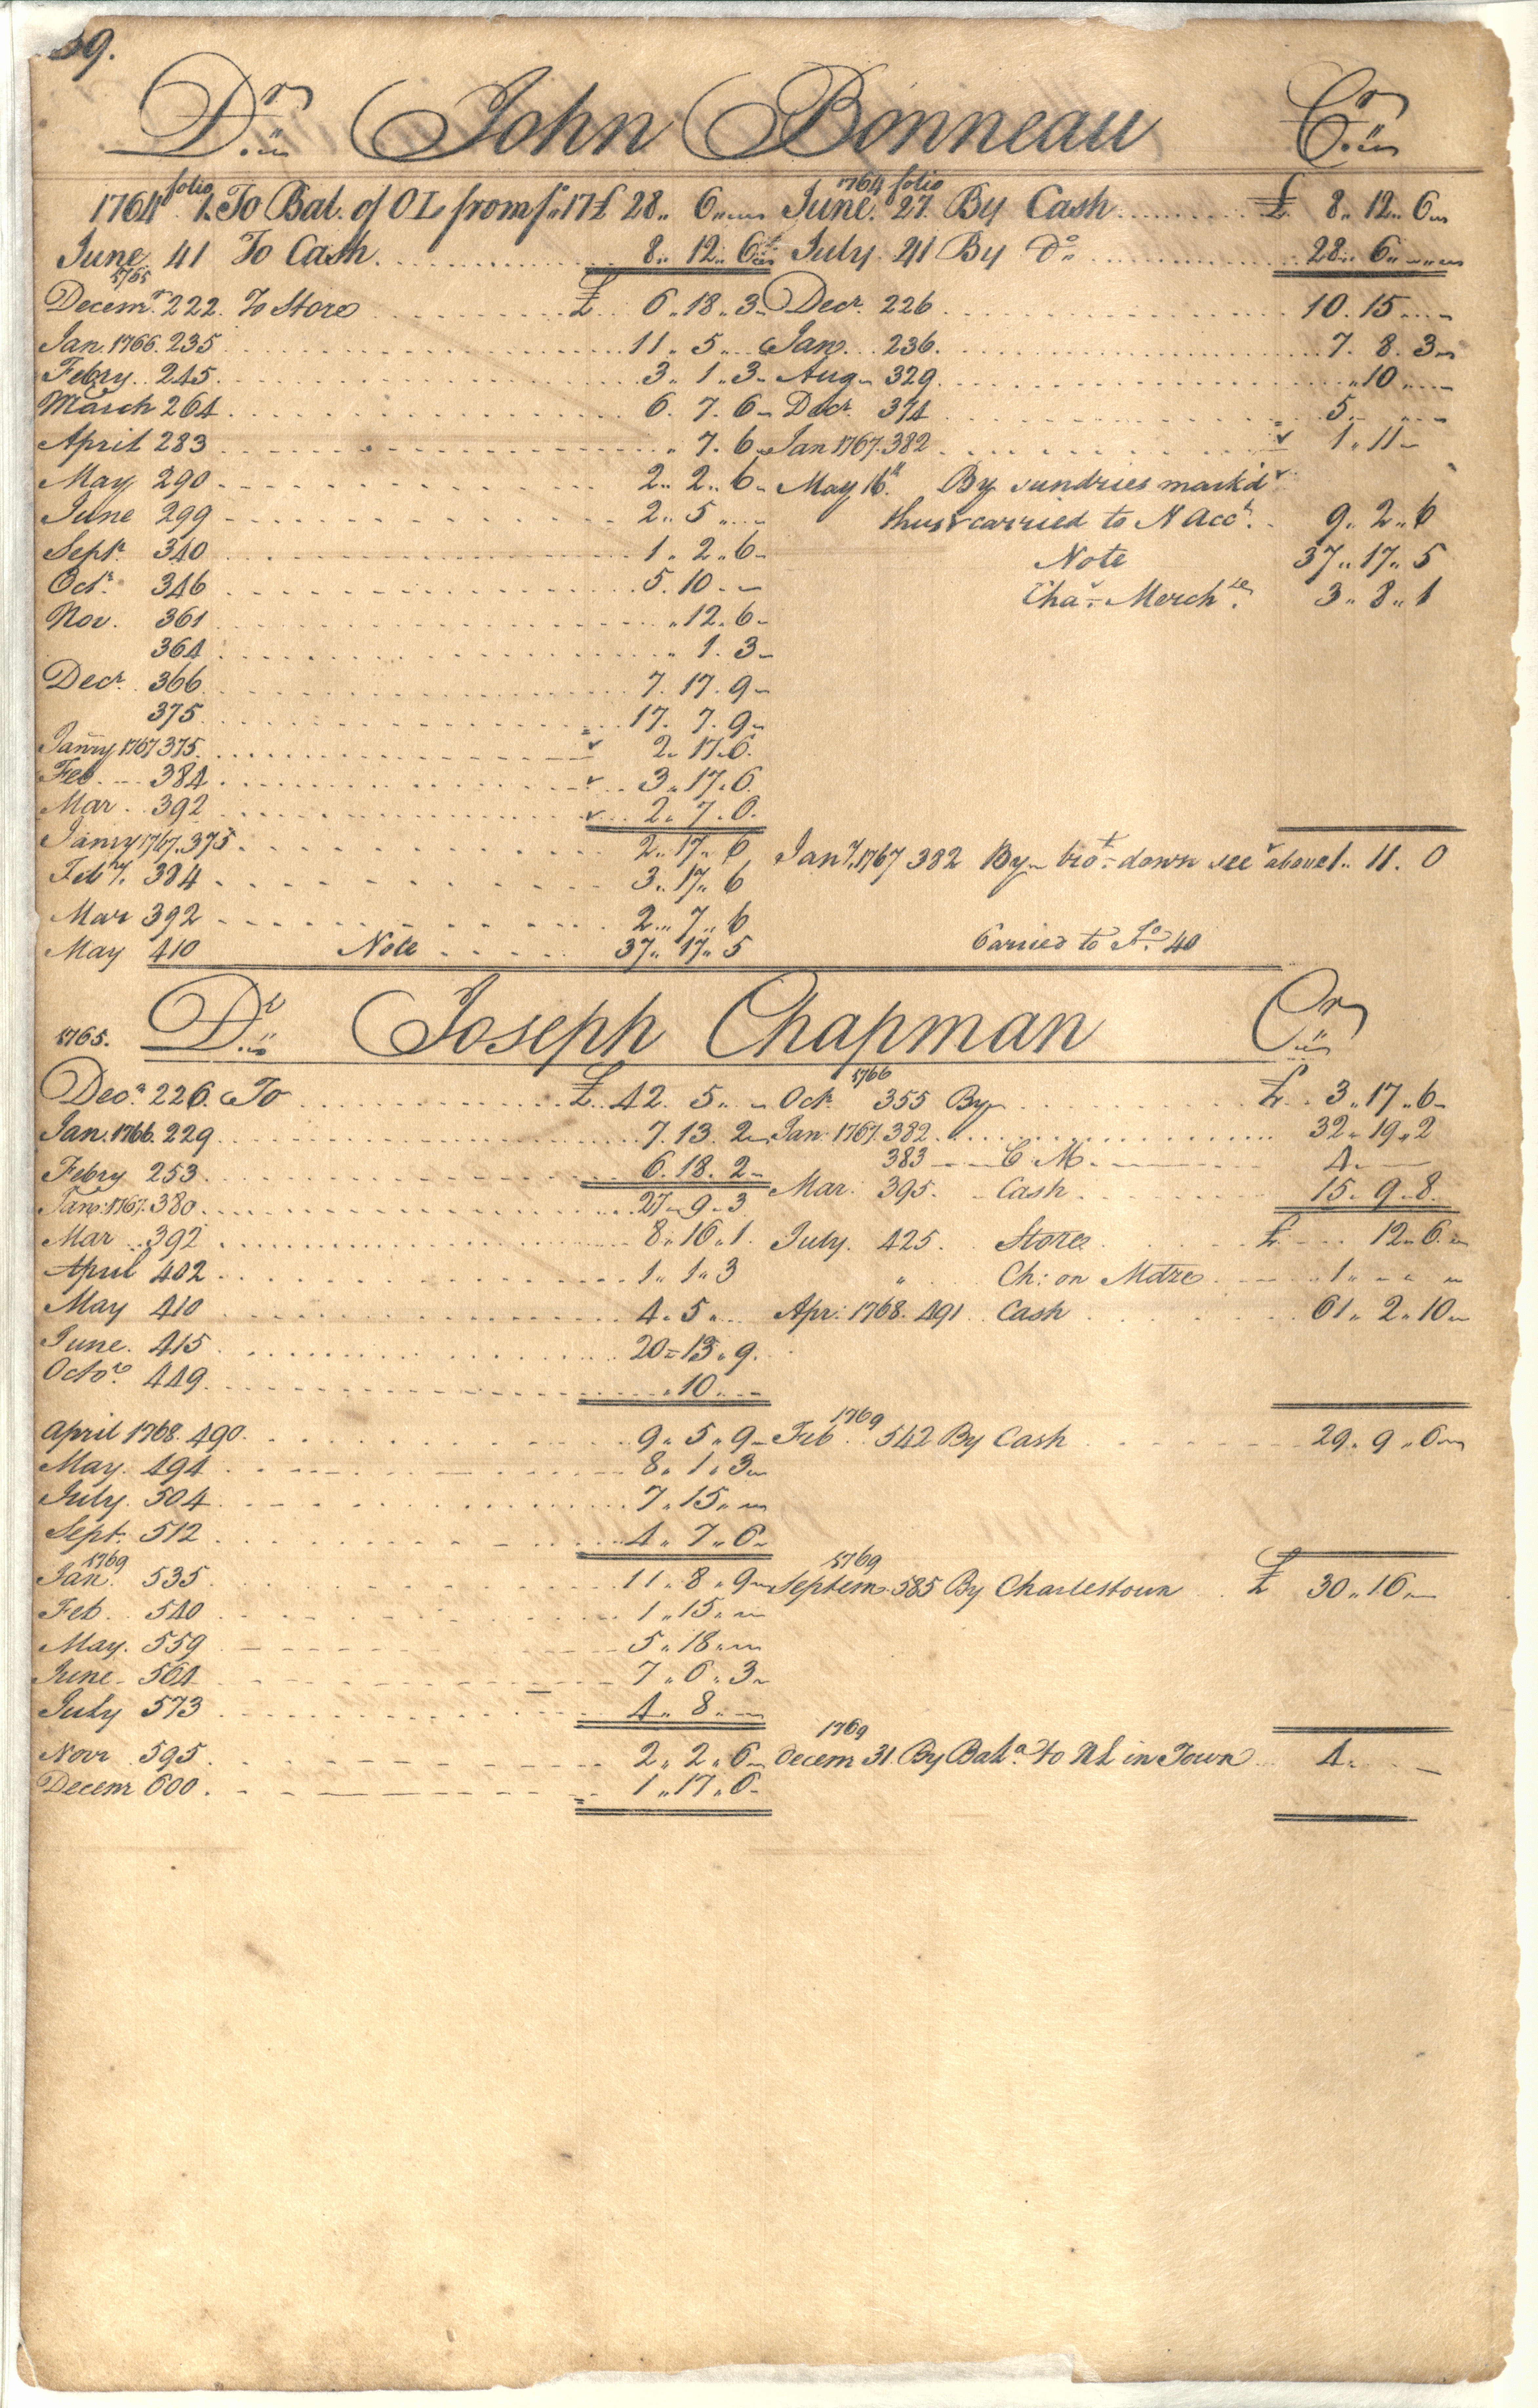 Plowden Weston's Business Ledger, page 39